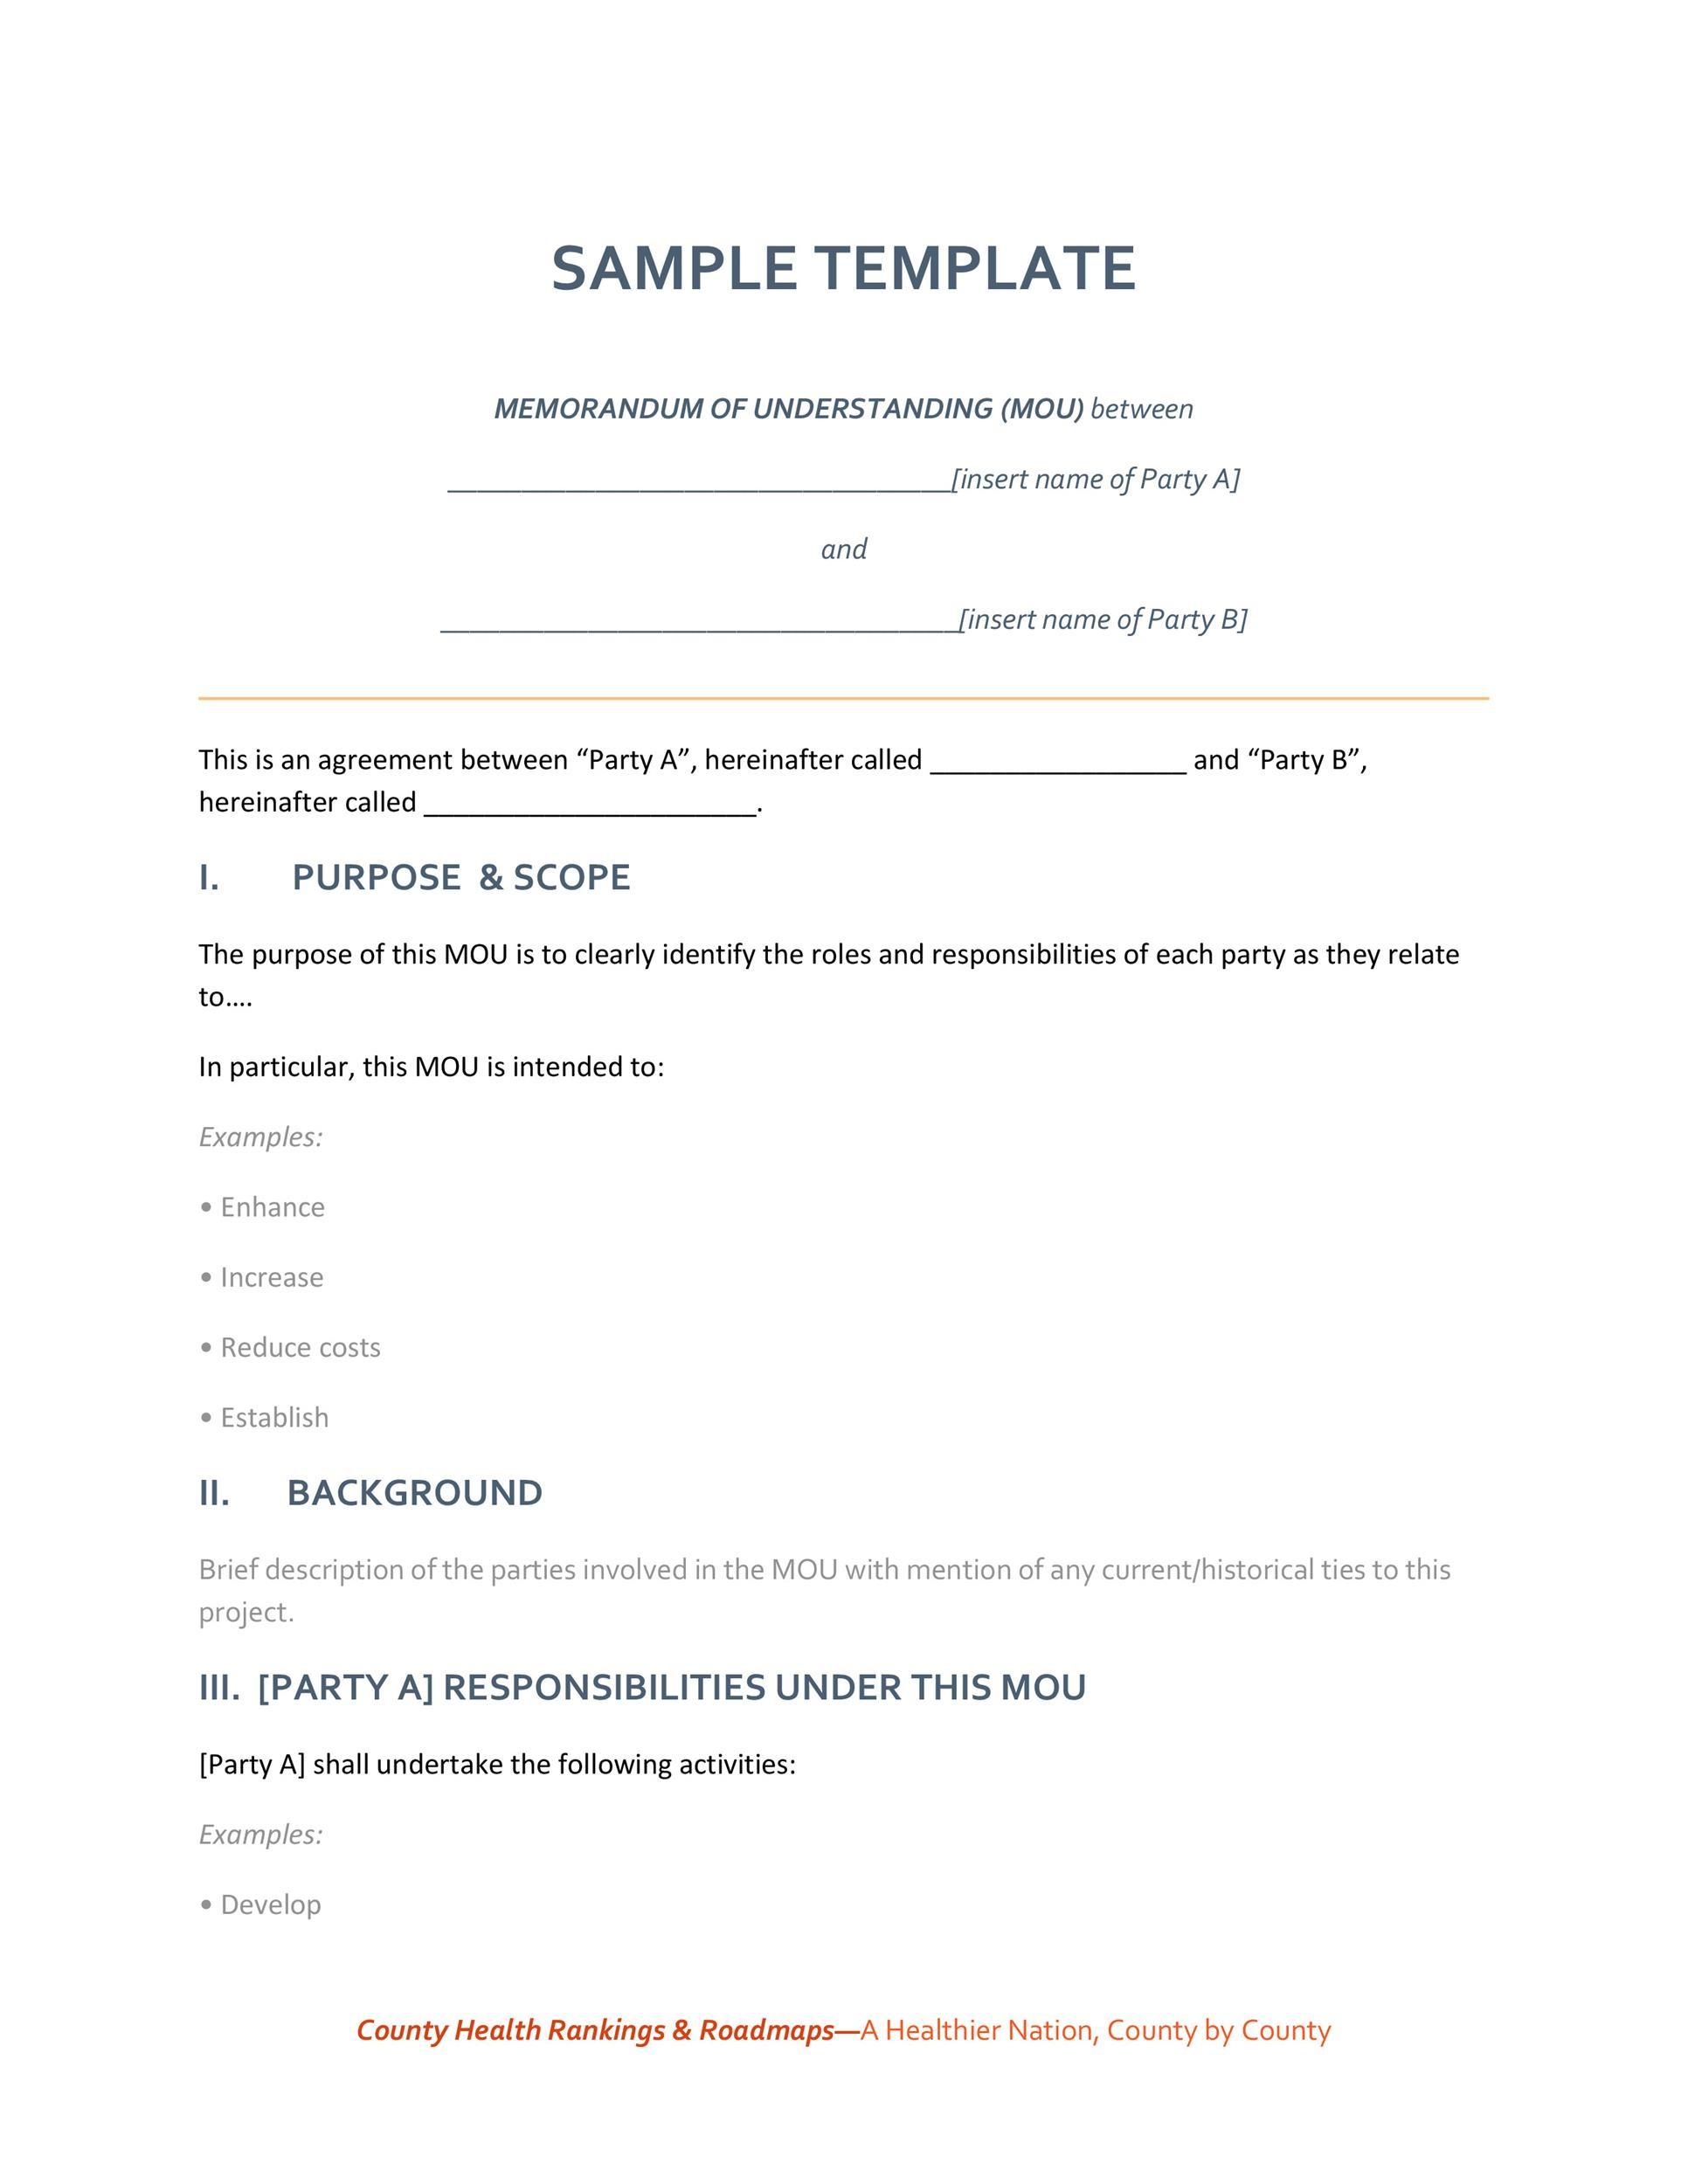 50 free memorandum of understanding templates word template lab